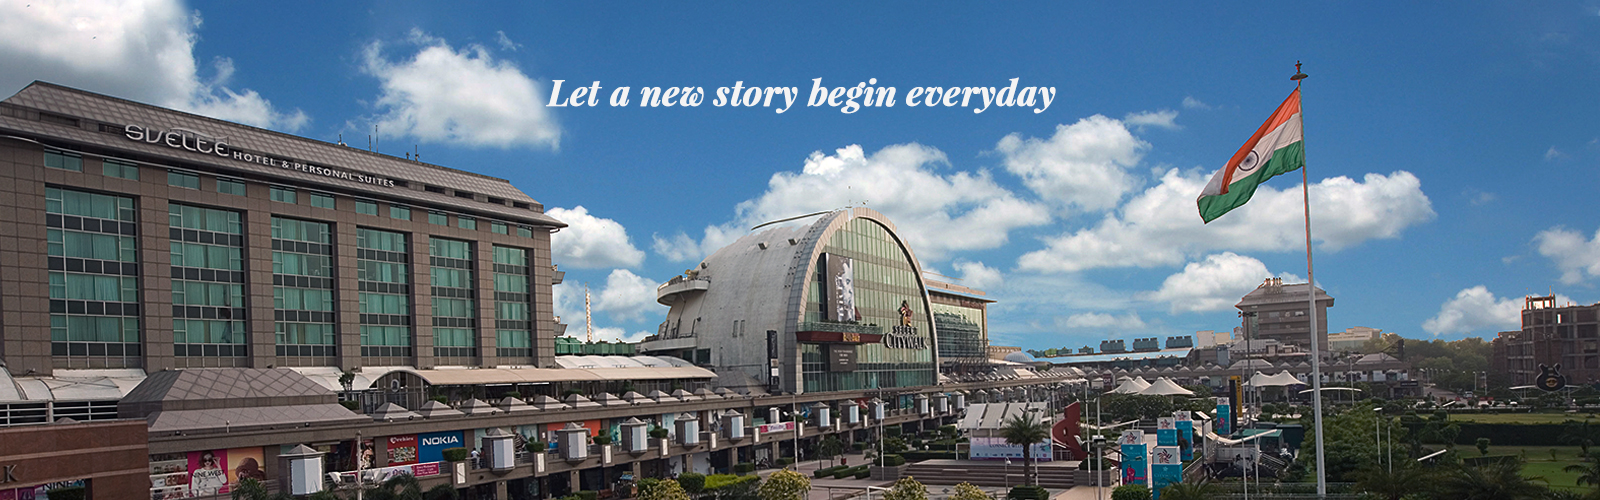 let-a-new-story-everyday-w